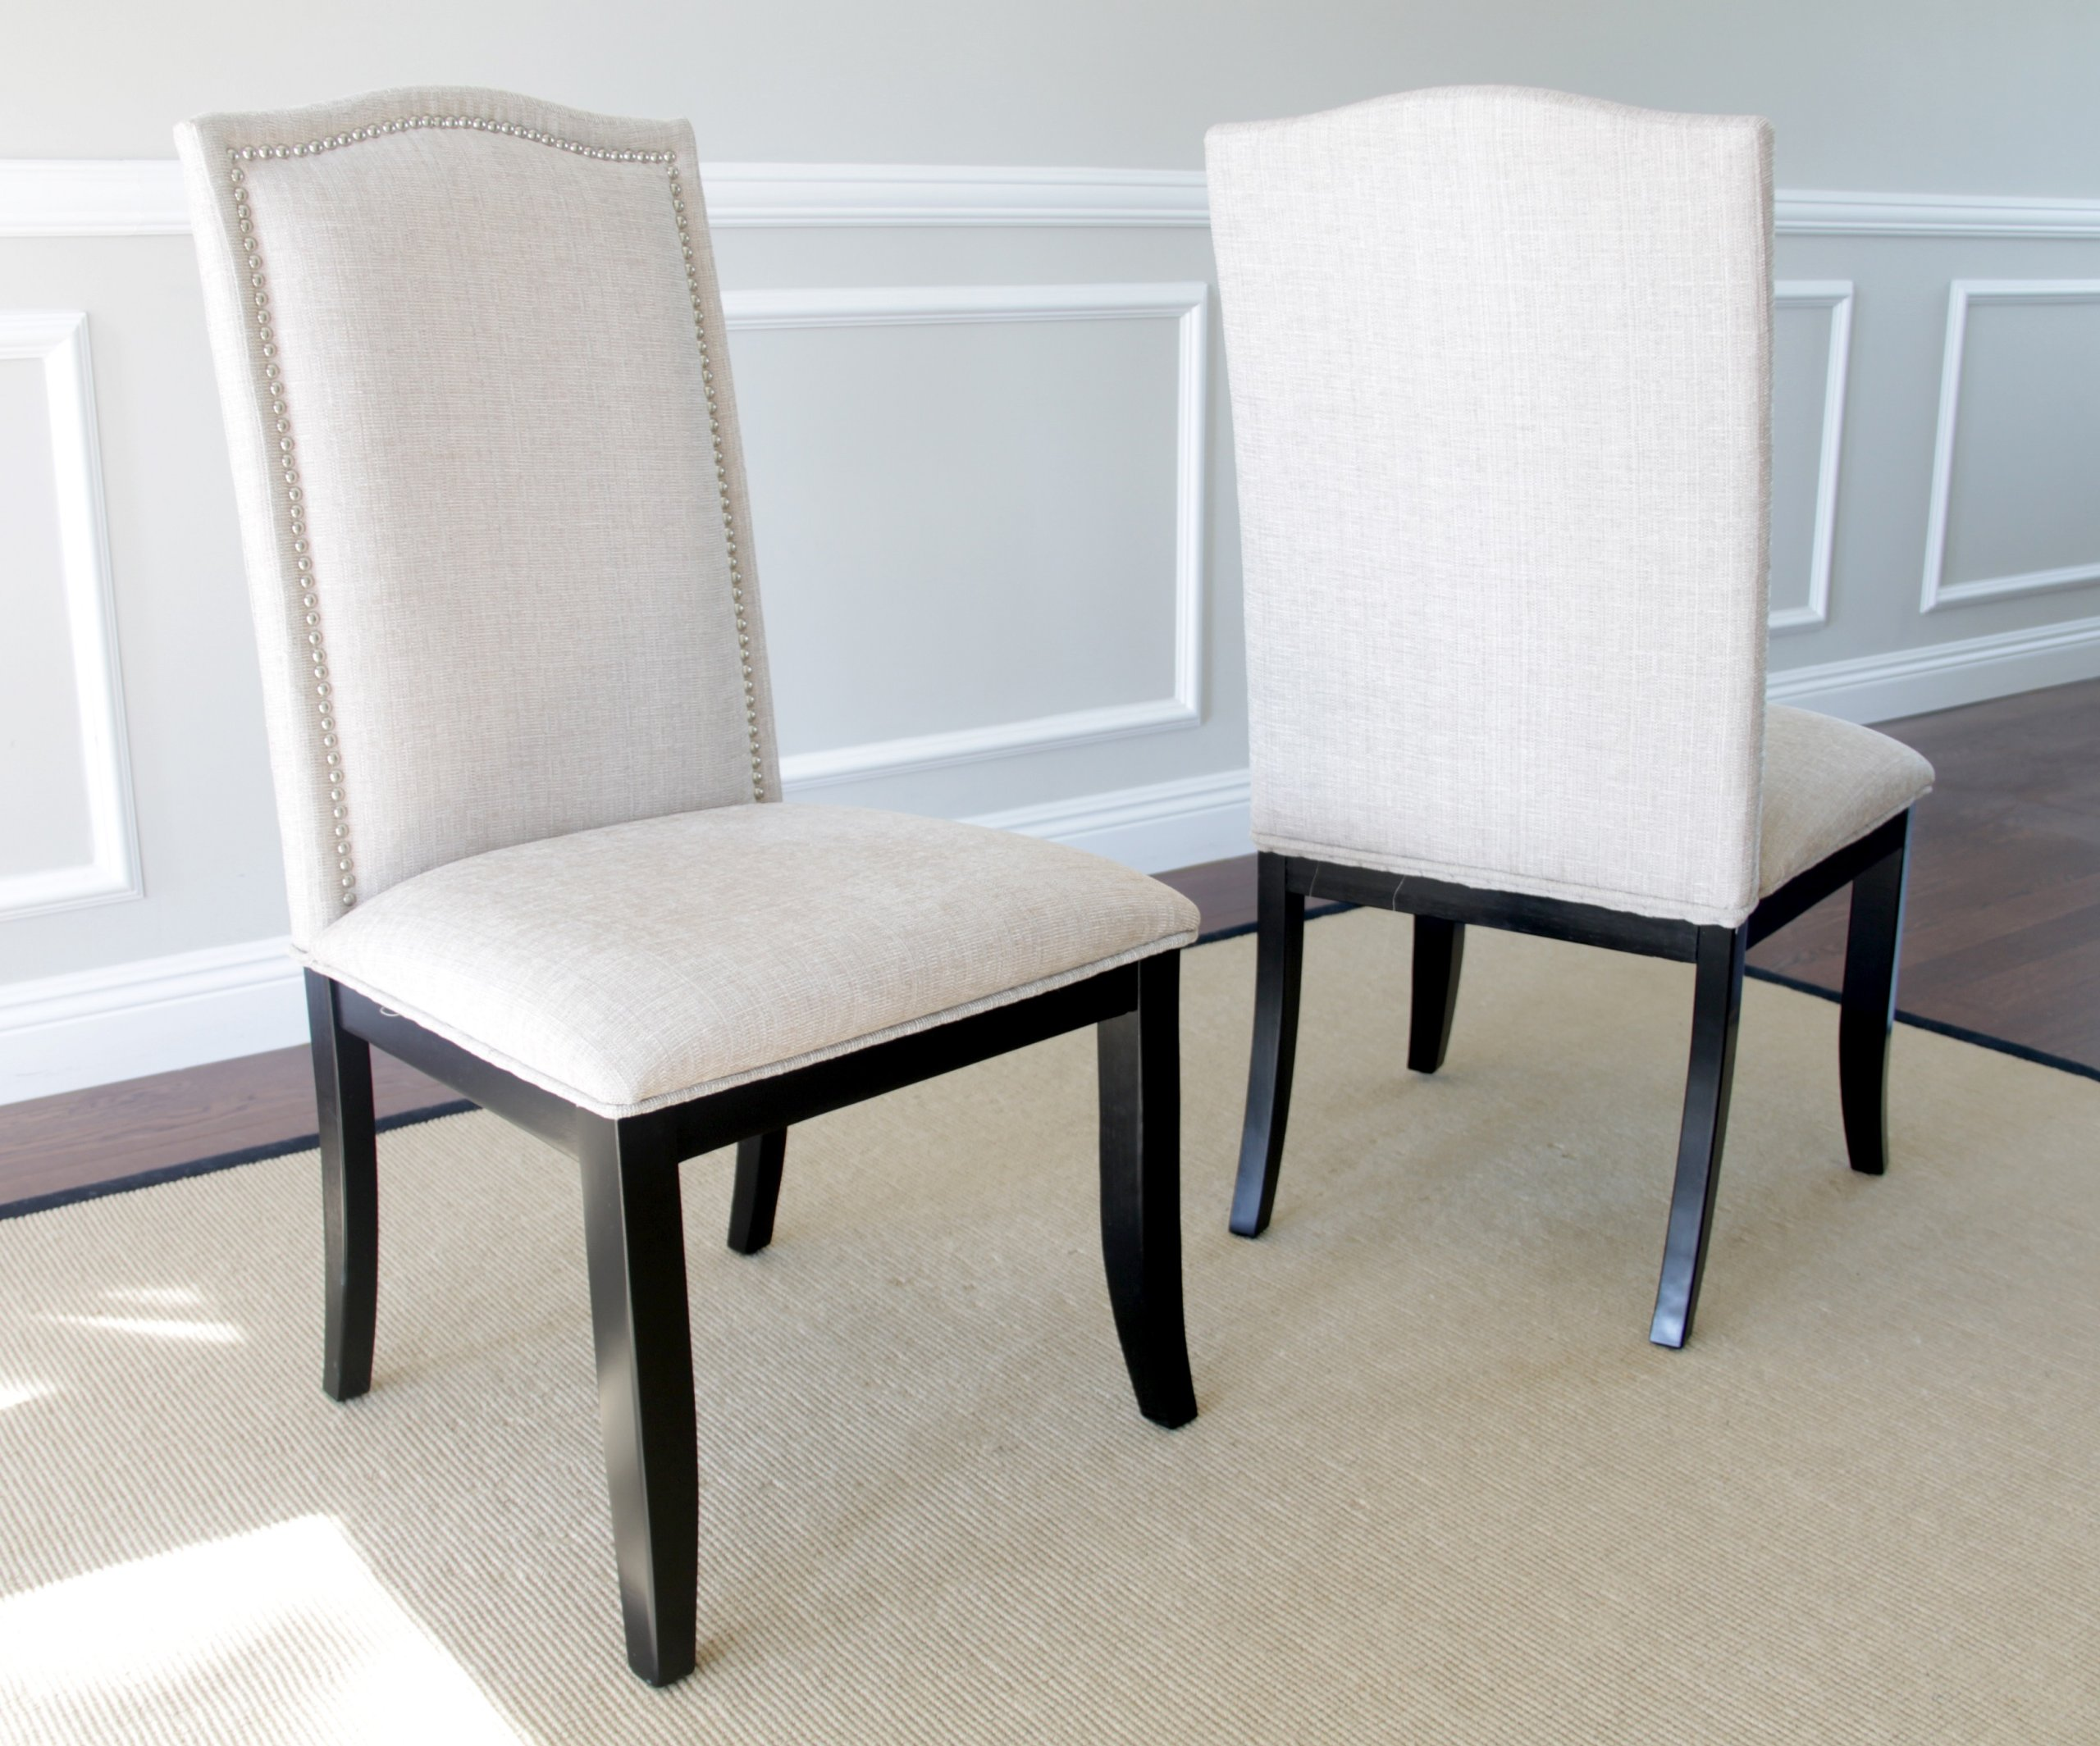 upholstered chair with nailhead trim and half sleeper set of 2 beige fabric dining chairs